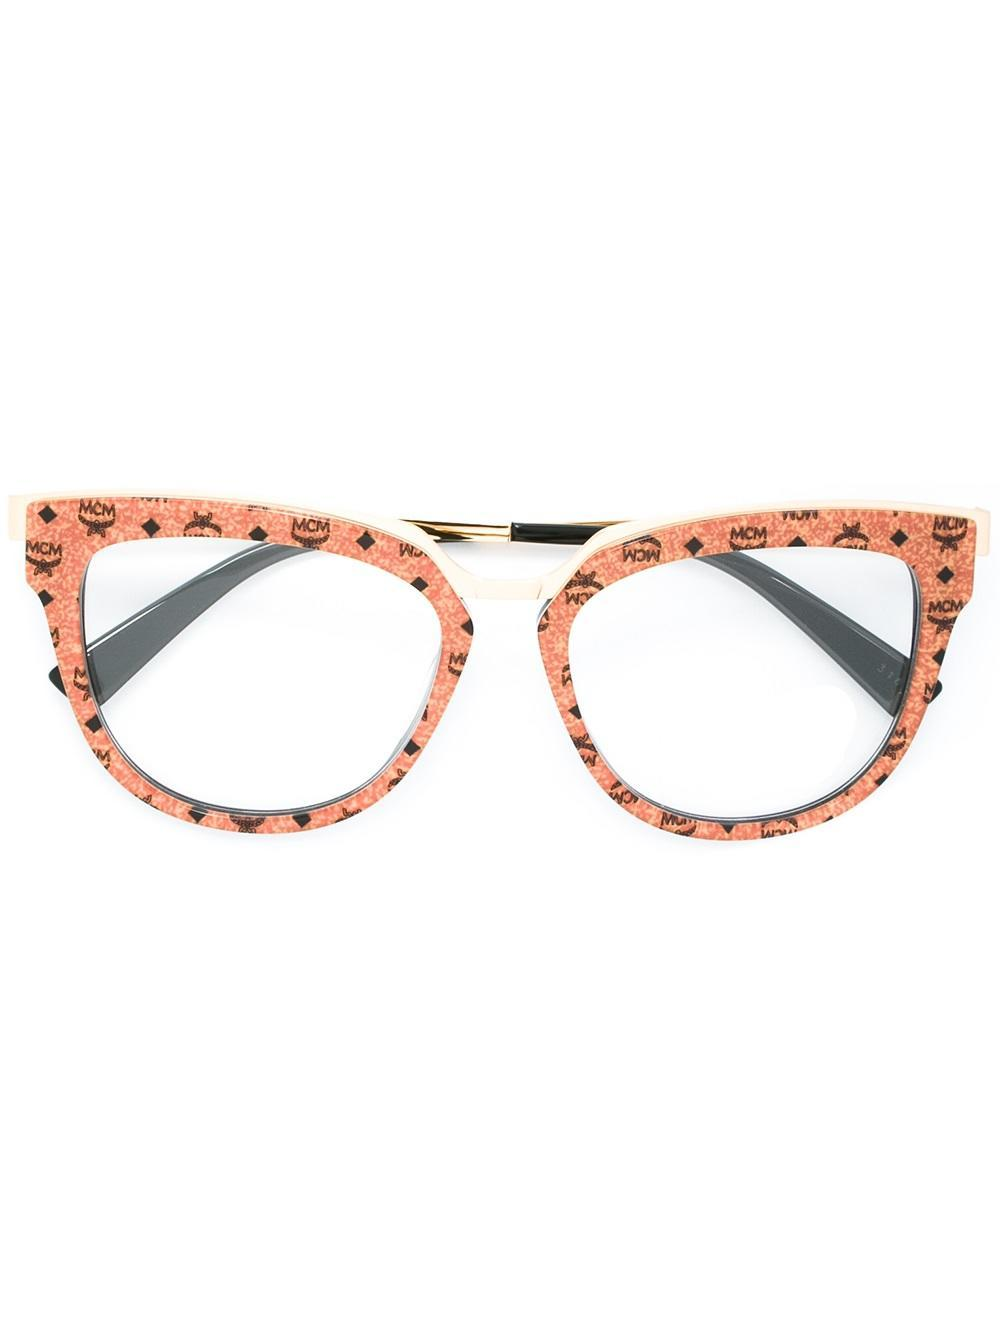 a59ff06b6ebe7 MCM Patterned Round Frame Glasses - Lyst